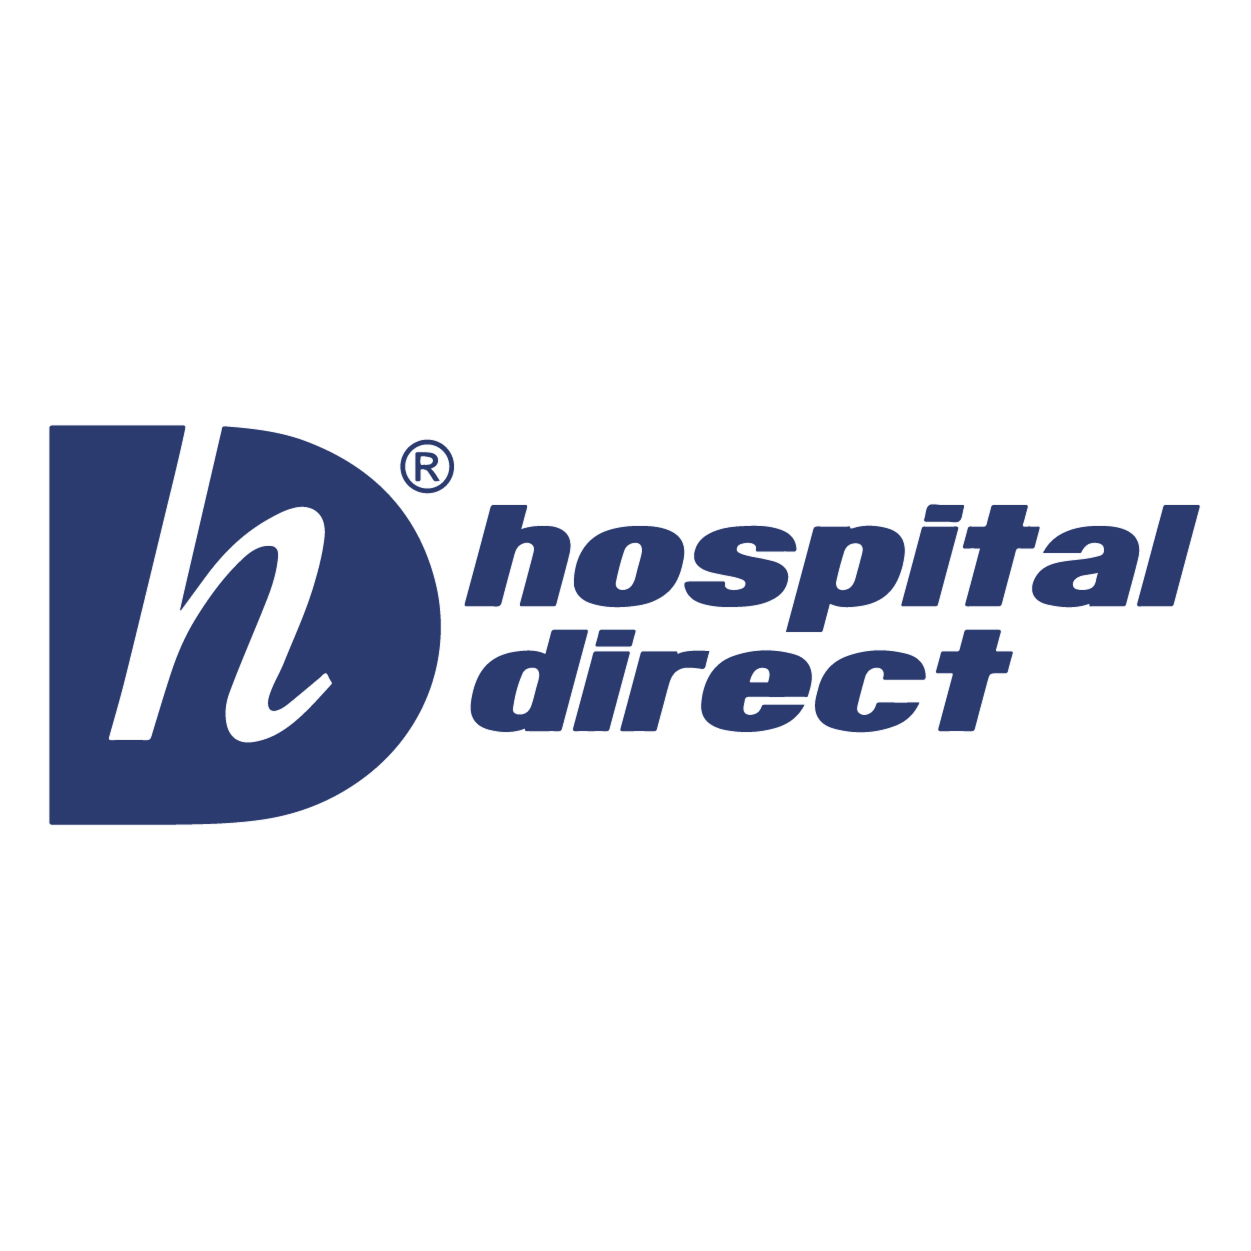 Hospital Direct (Marketing) Ltd